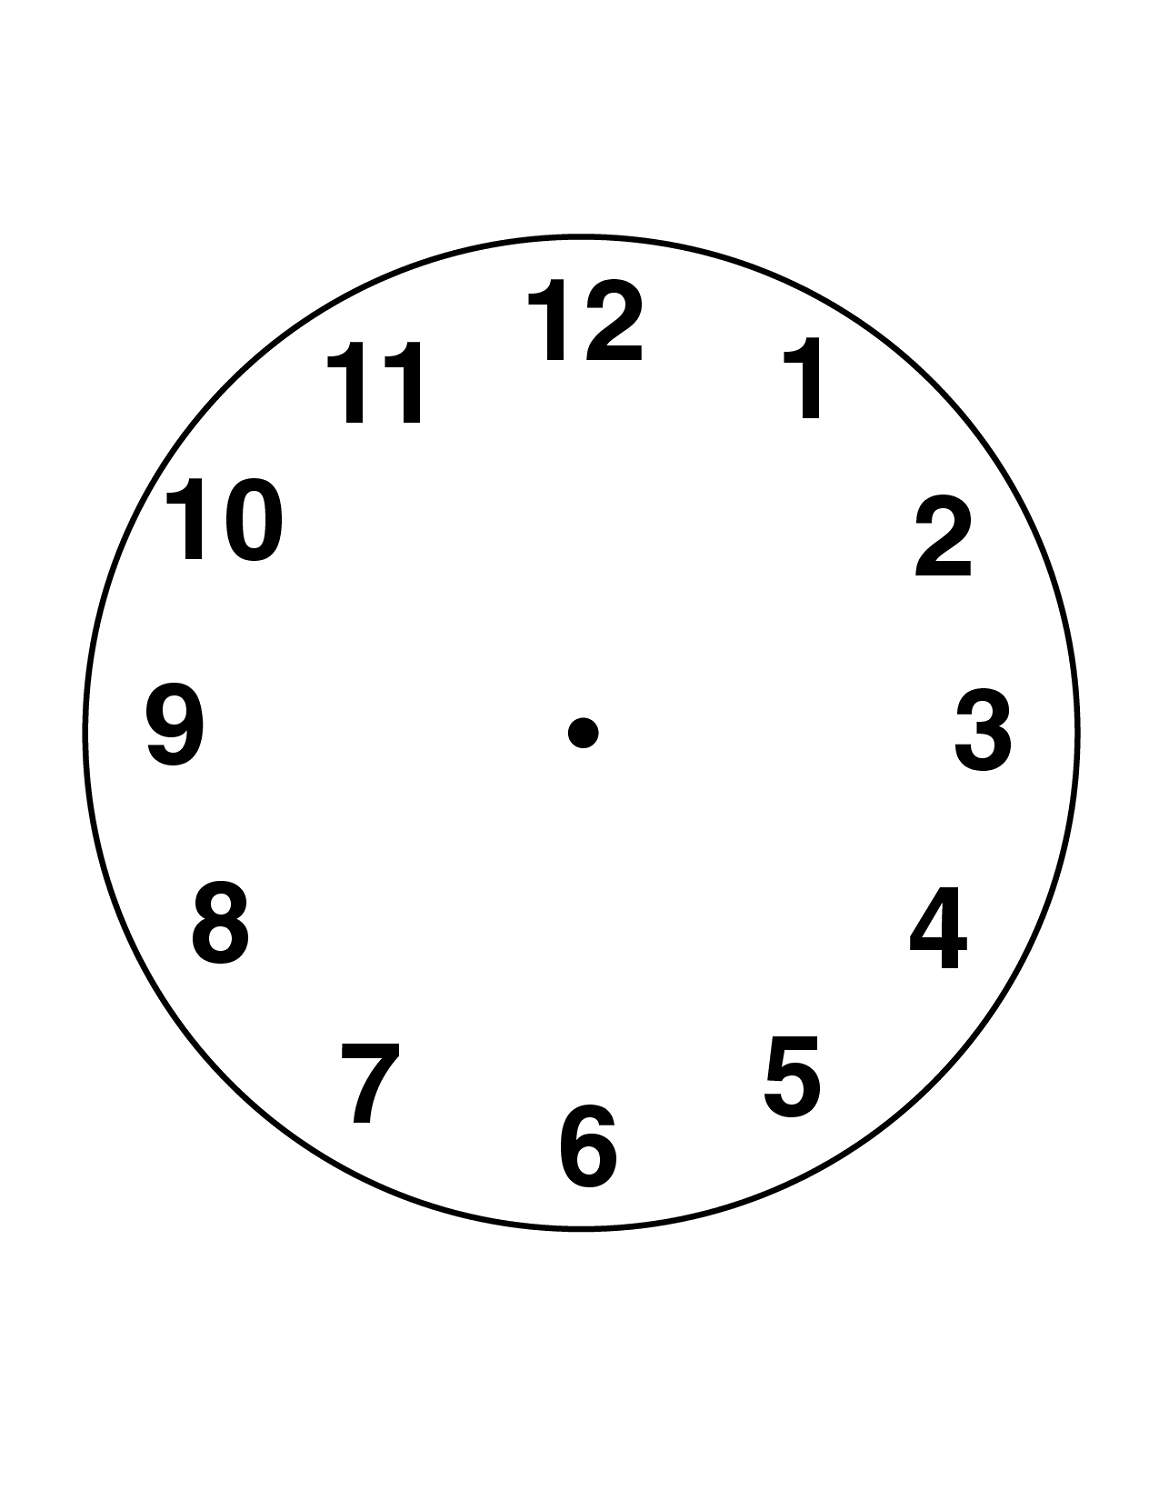 clock face template free k5 worksheets math worksheets blank clock blank clock faces. Black Bedroom Furniture Sets. Home Design Ideas